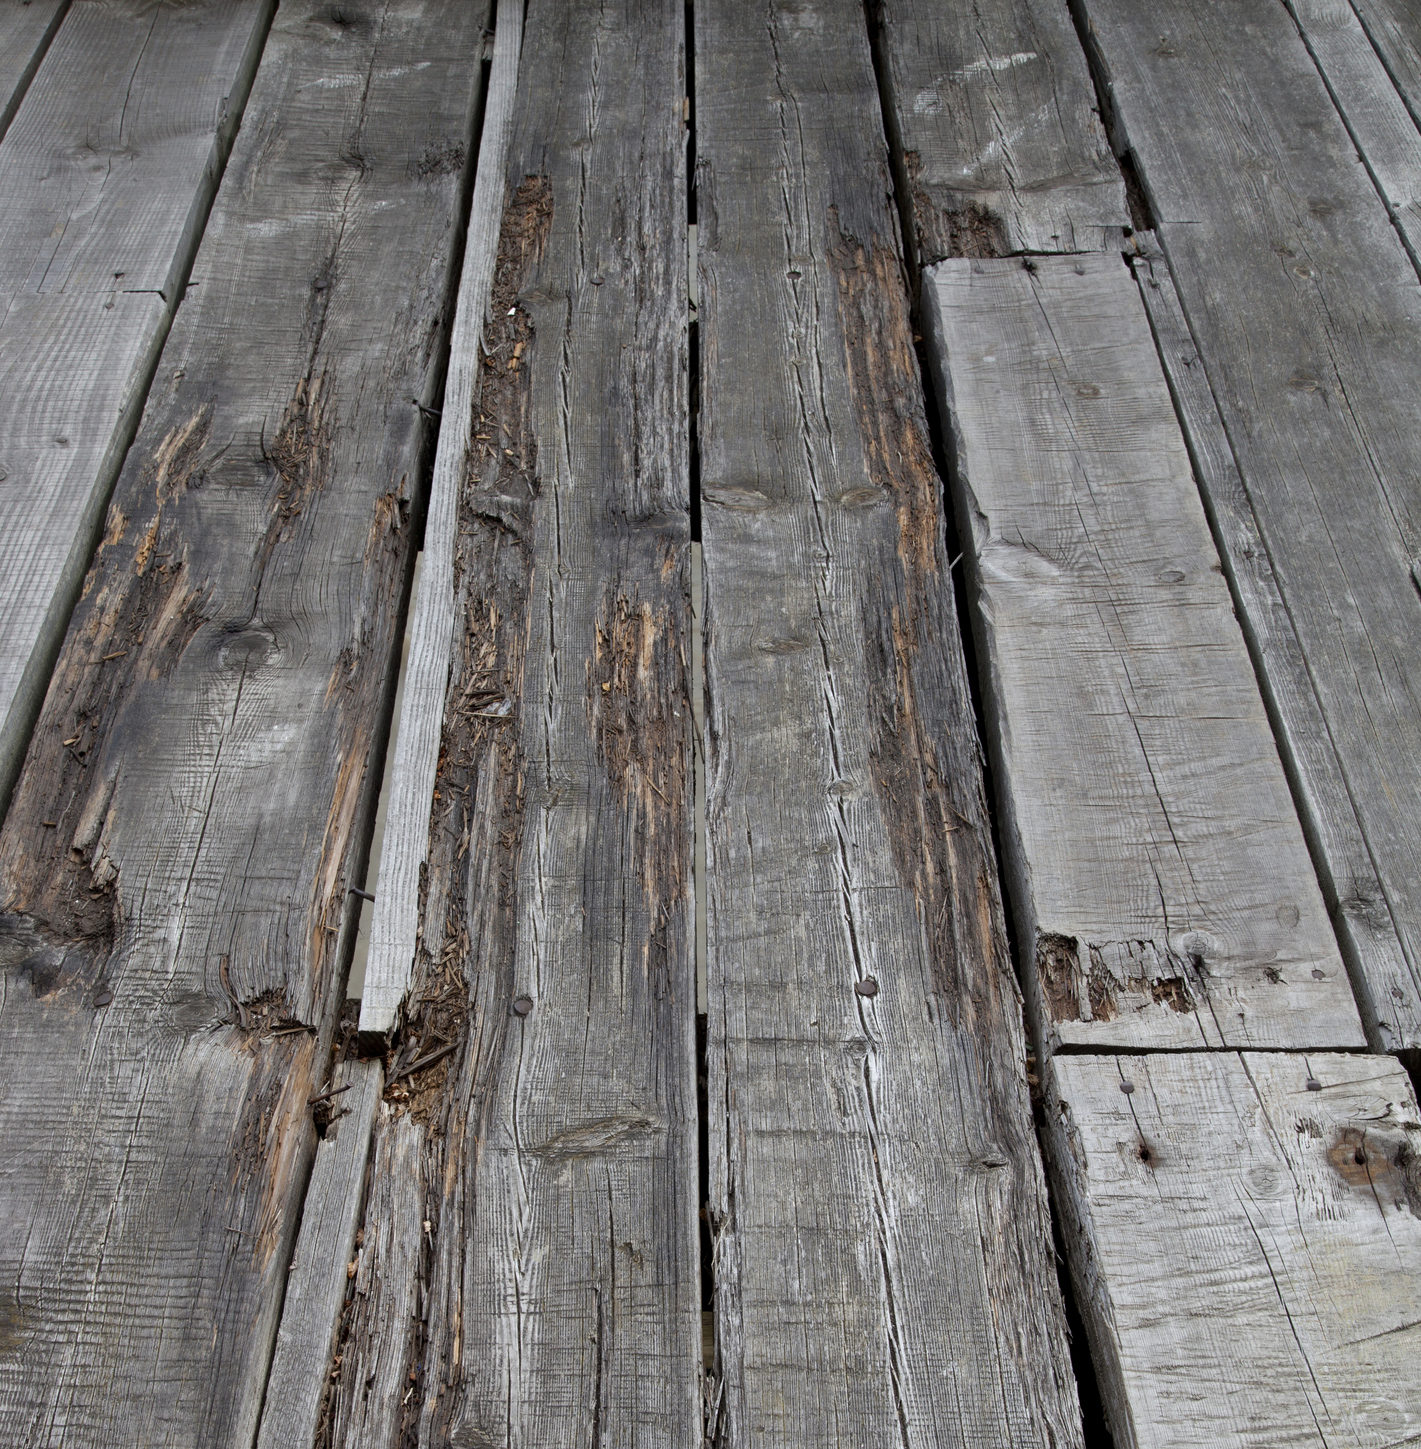 Weathered old decking